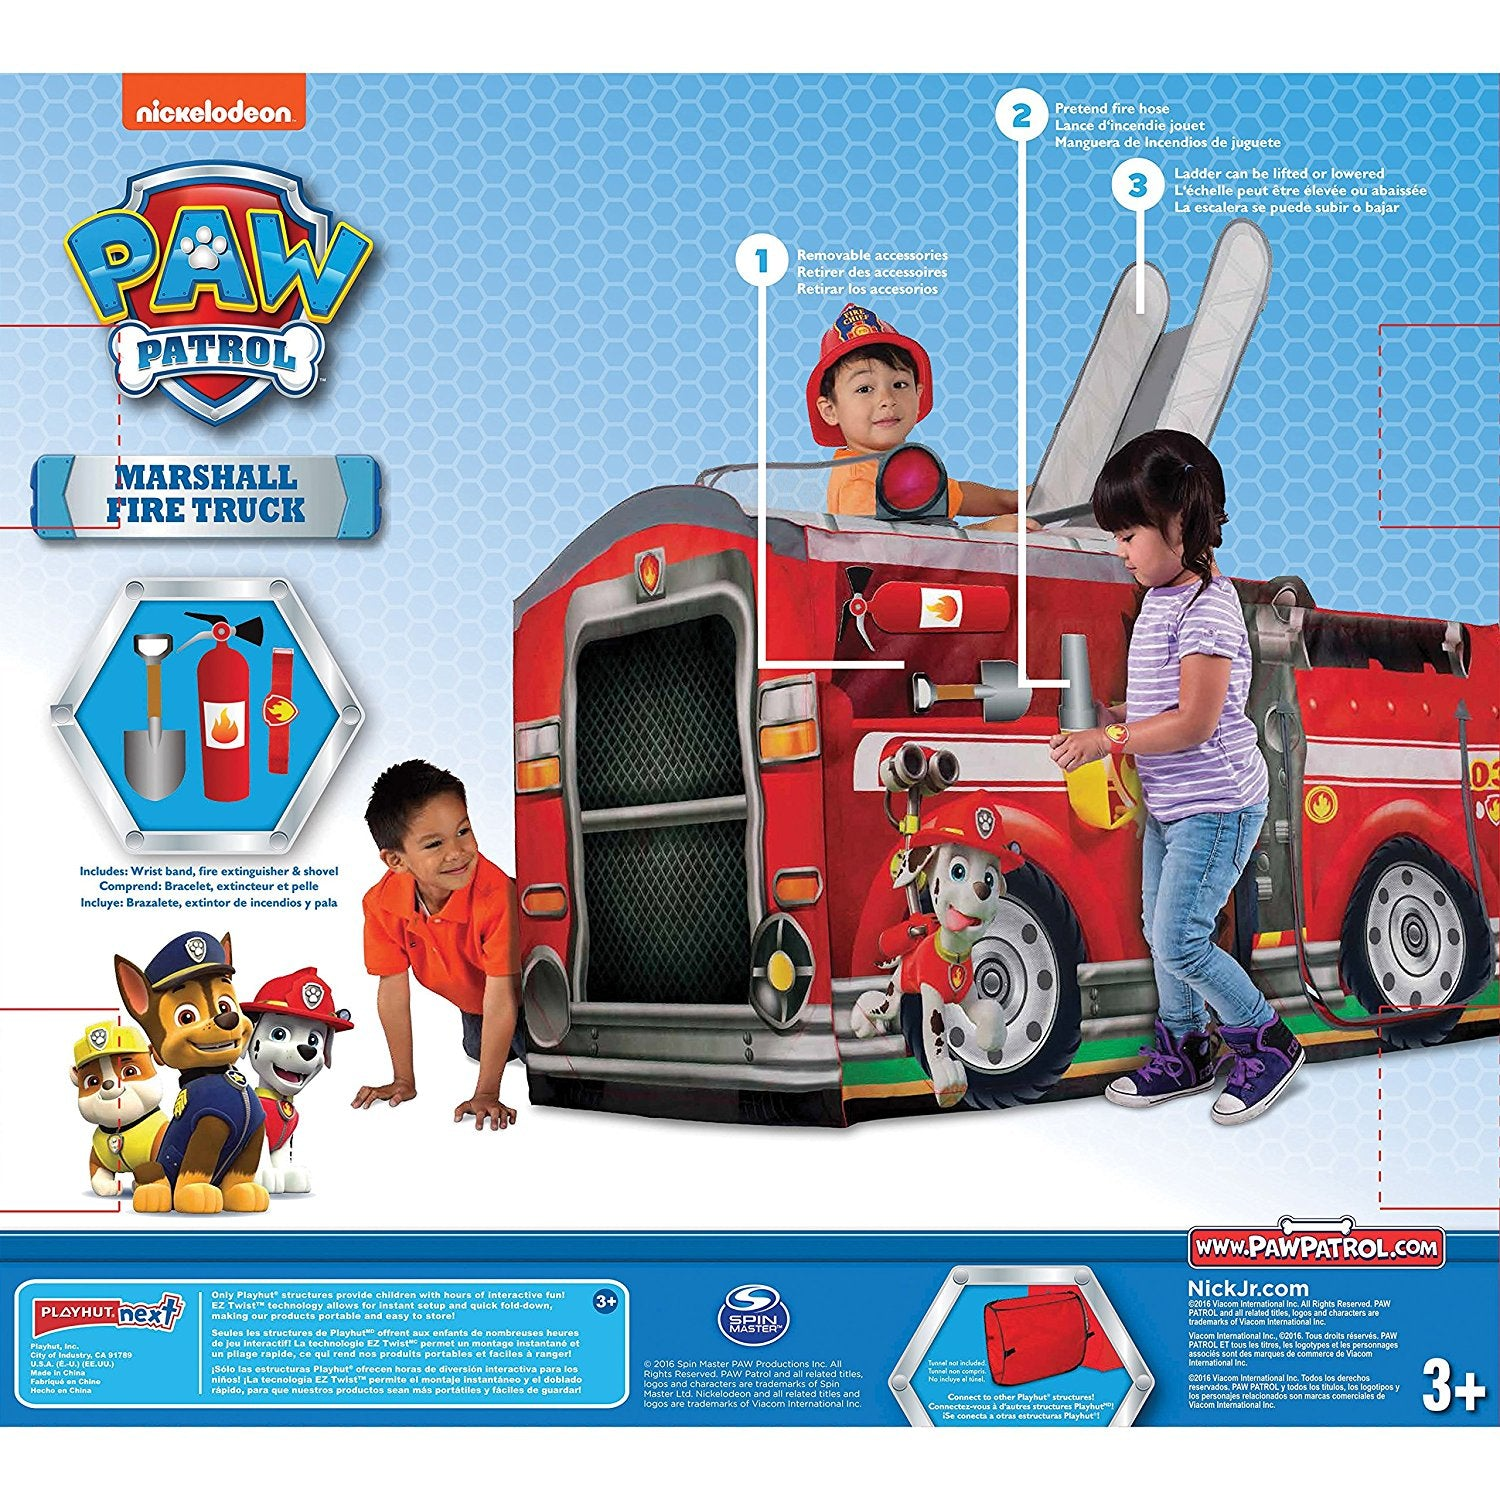 paw patrol marshall fire truck playhouse latest kids